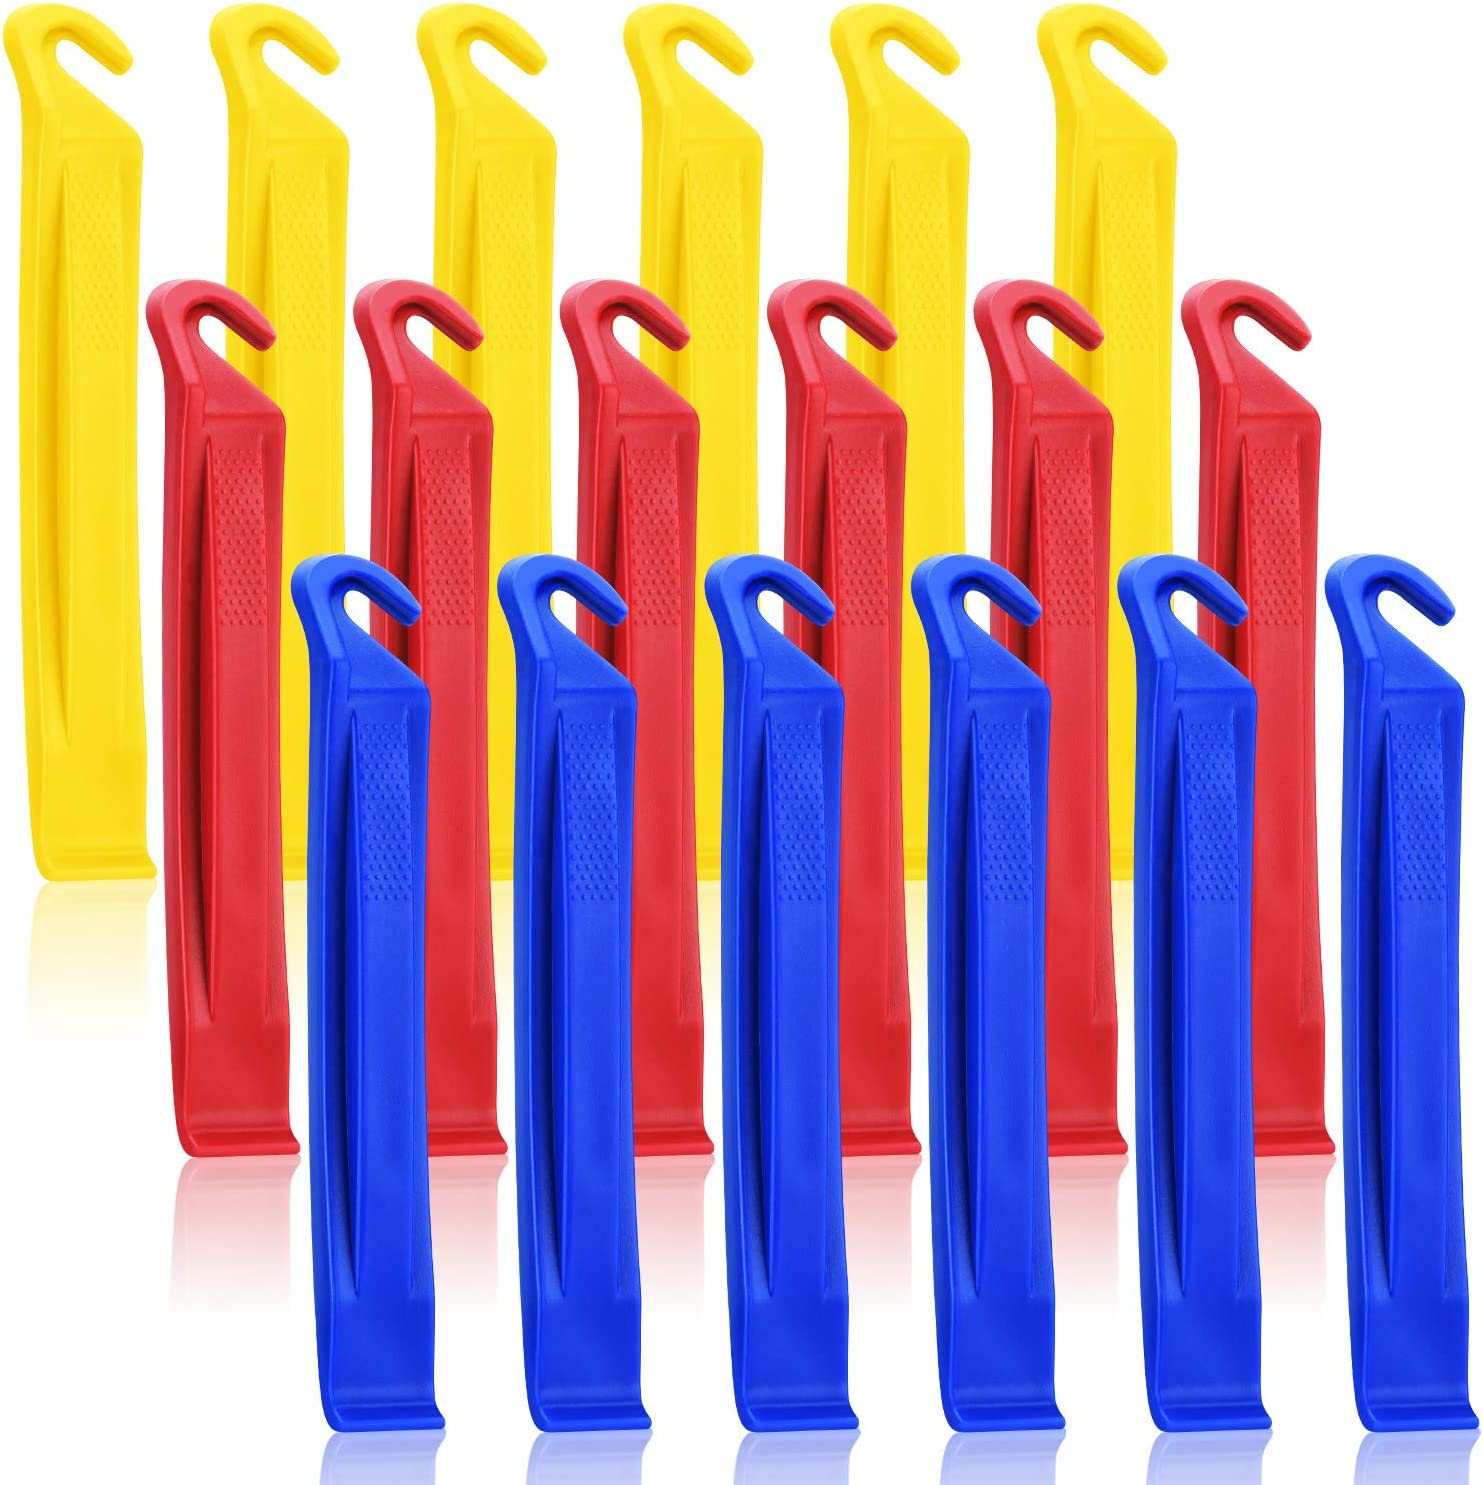 Details about  /3X Cycling Bicycle Nylon Tire Tyre Lever Bike Repair Opener Breaker Tool KN